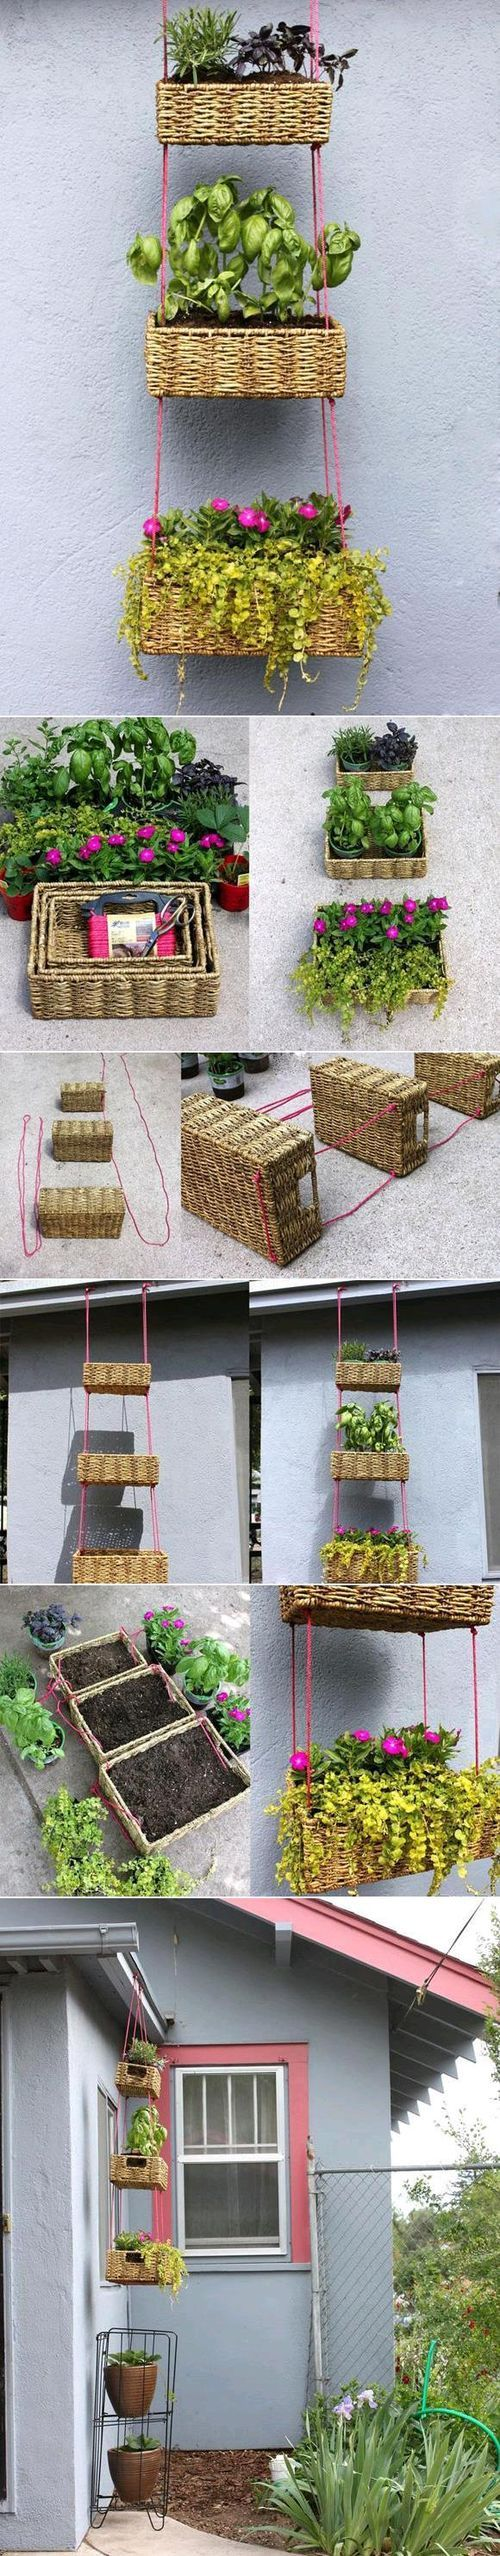 Hanging basket, maybe a smaller version for fruit in the kitchen?